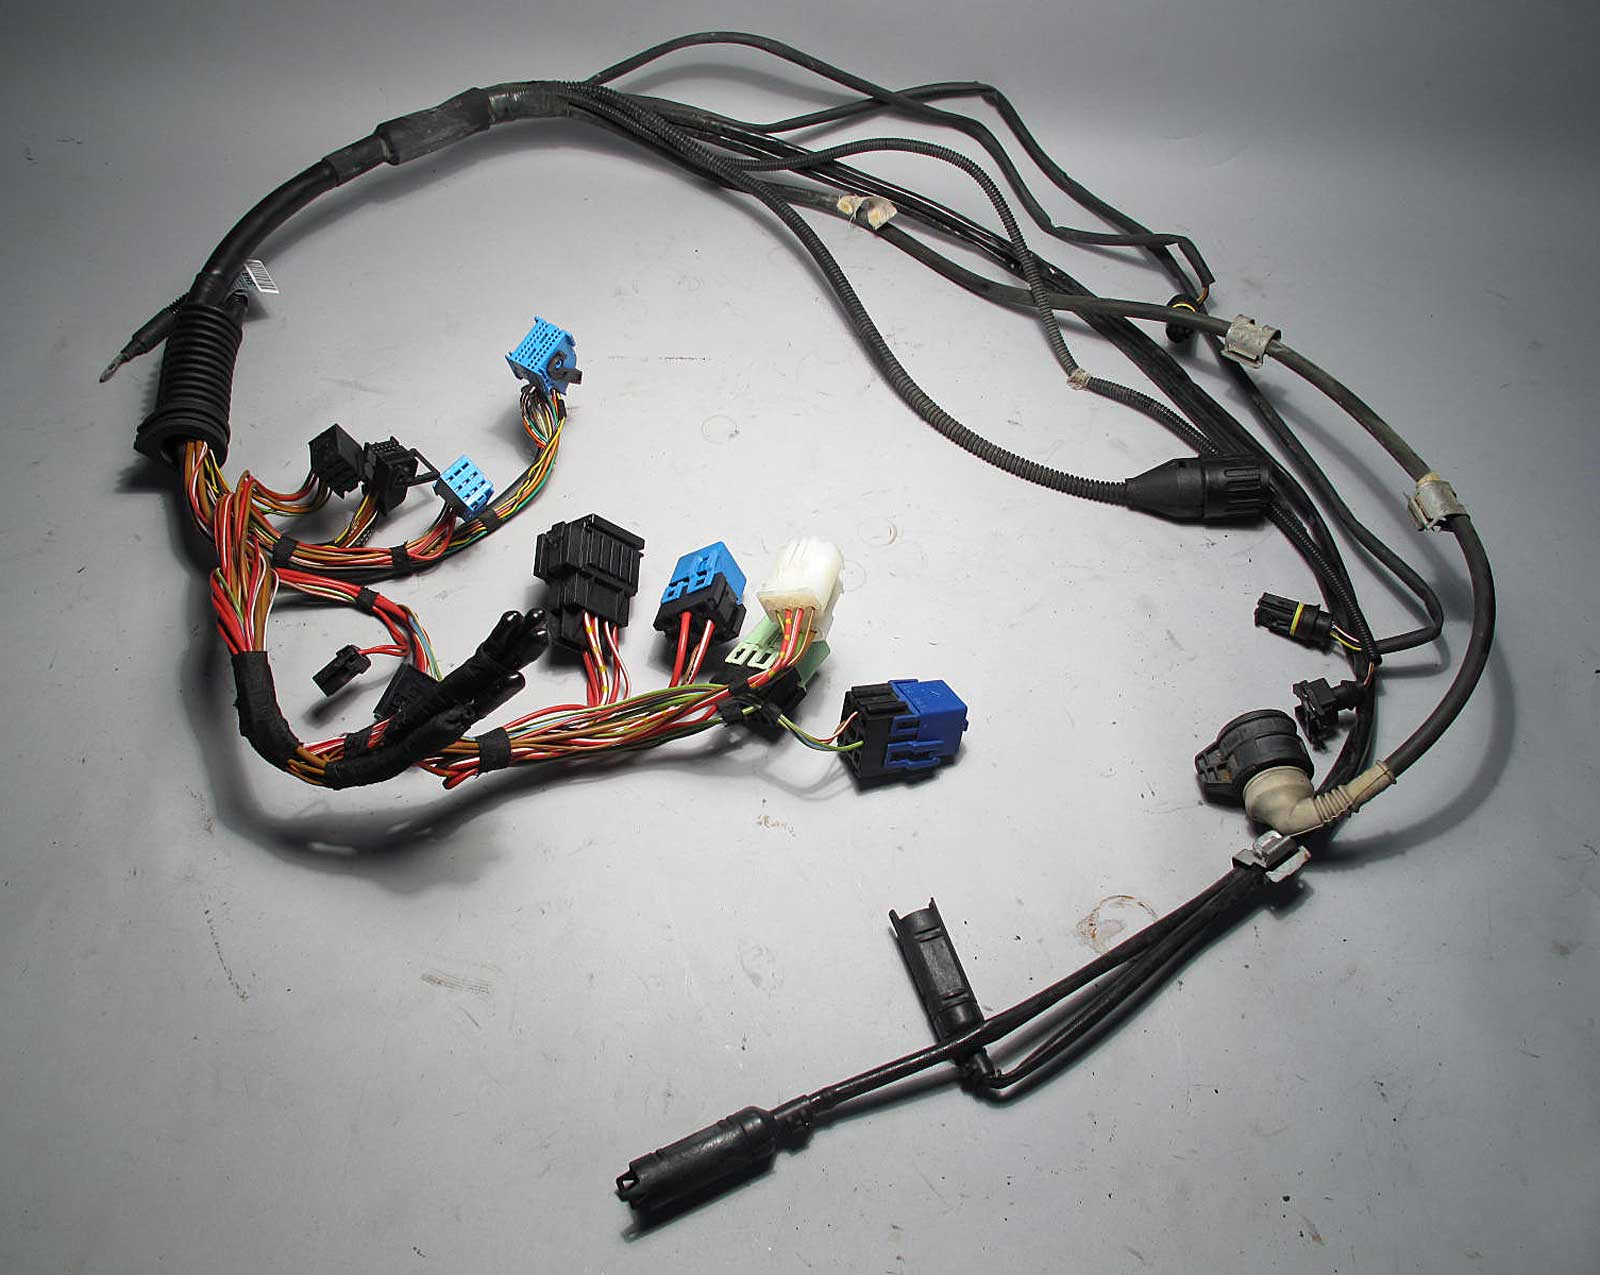 inv_006811 bmw e46 323i 323ci automatic transmission gearbox wiring harness bmw e46 wiring harness diagram at alyssarenee.co